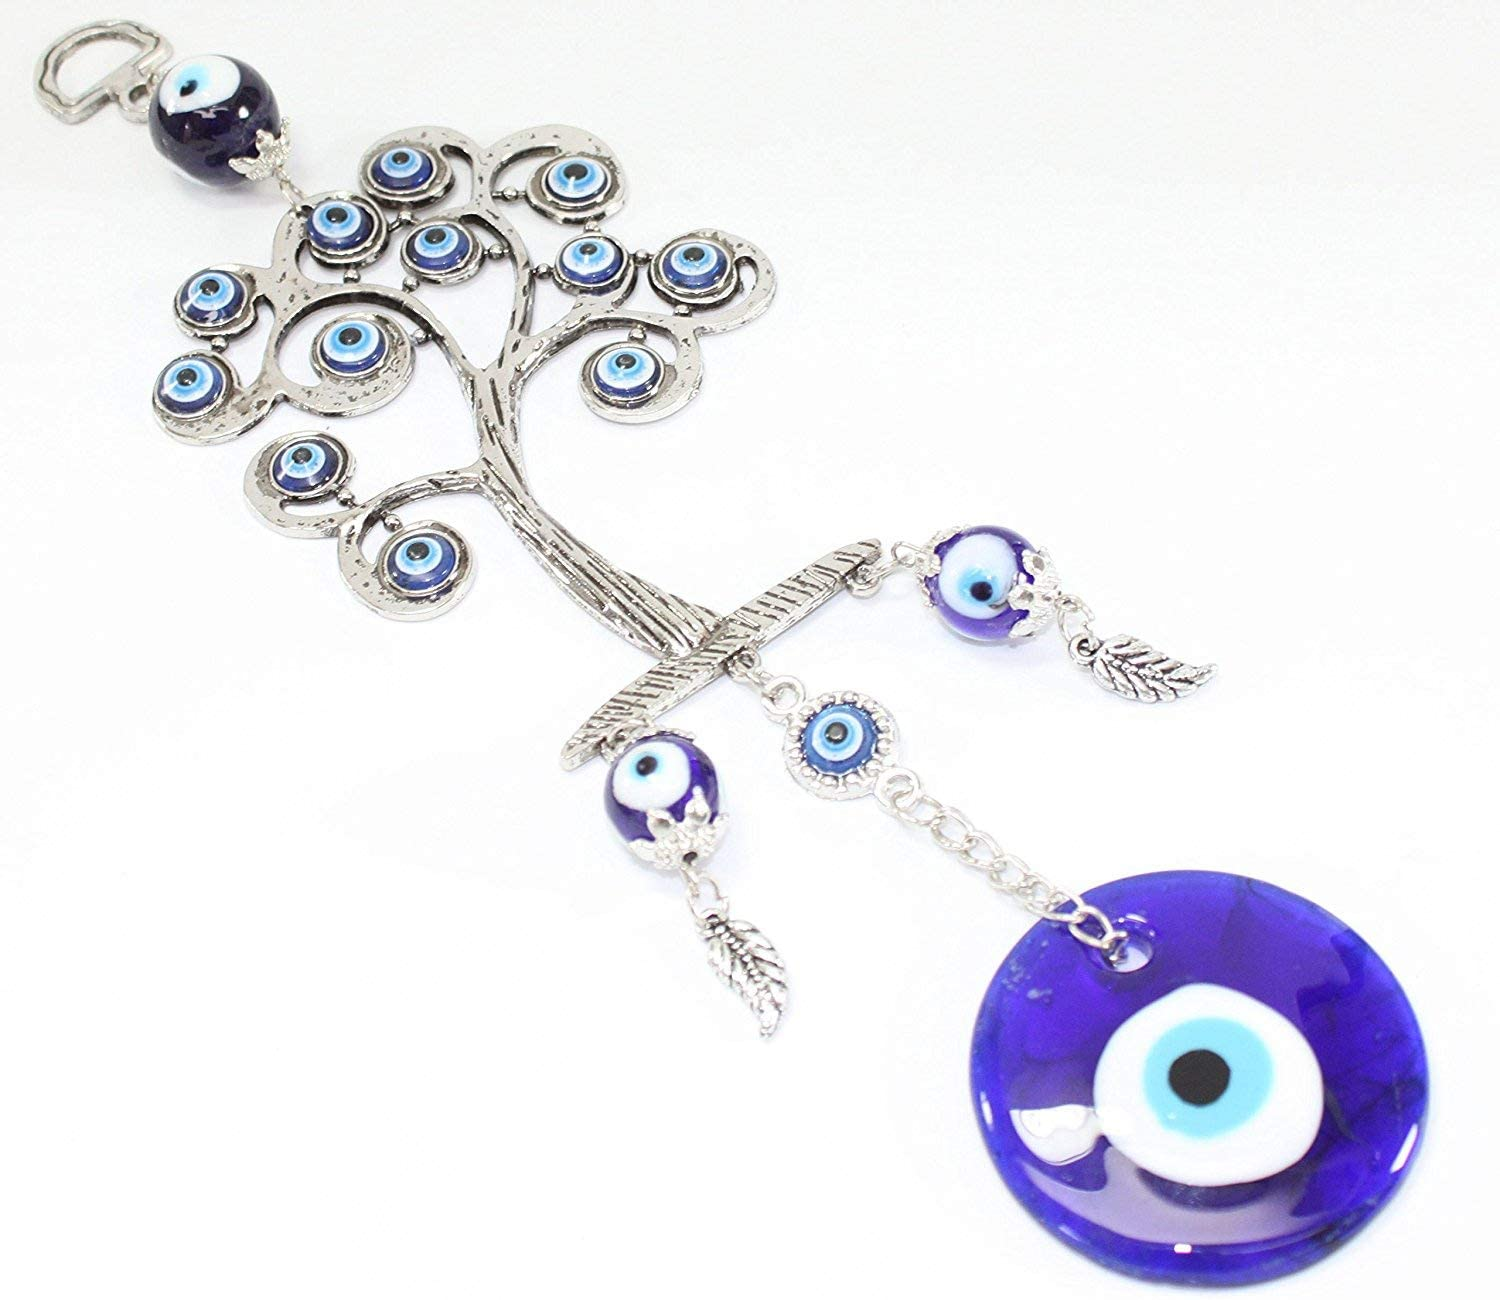 Turkish Blue Evil Eye (Nazar) Life Tree Amulet Wall Hanging Home Decor Protection Blessing Gift GP9501